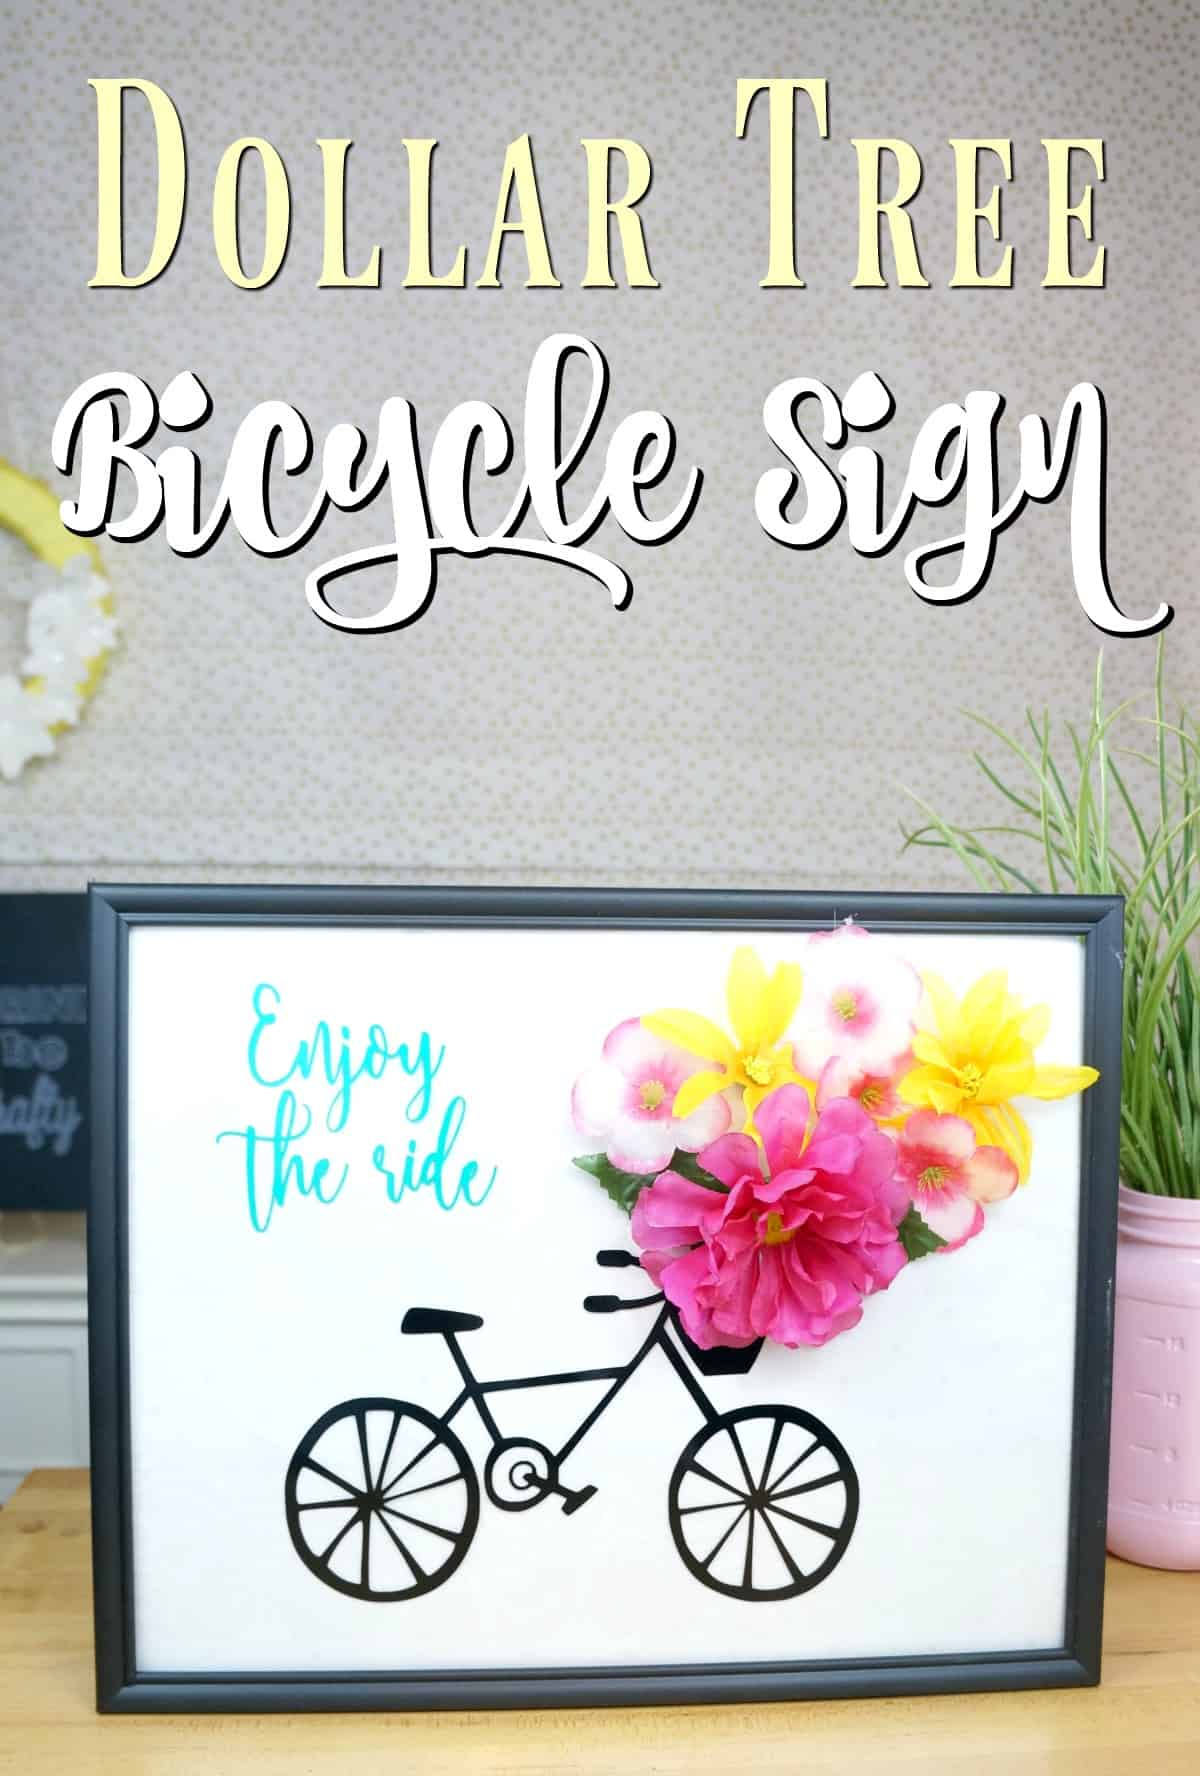 Dollar Tree Spring Bicycle Sign with Flowers